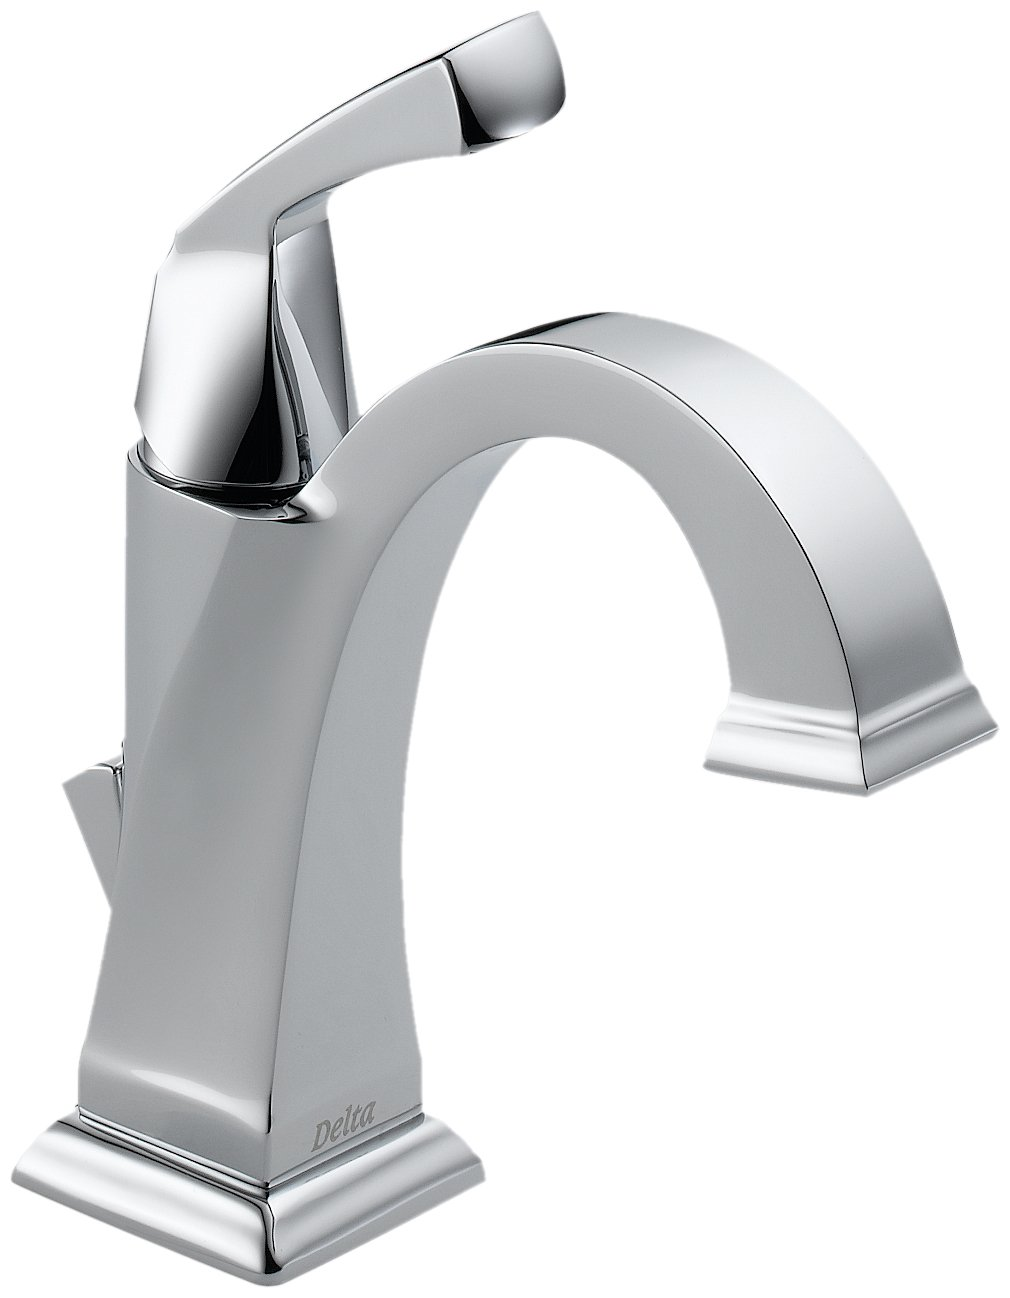 k hole single faucet bathroom polished chrome com amazon handle dp alteo sink cp kohler